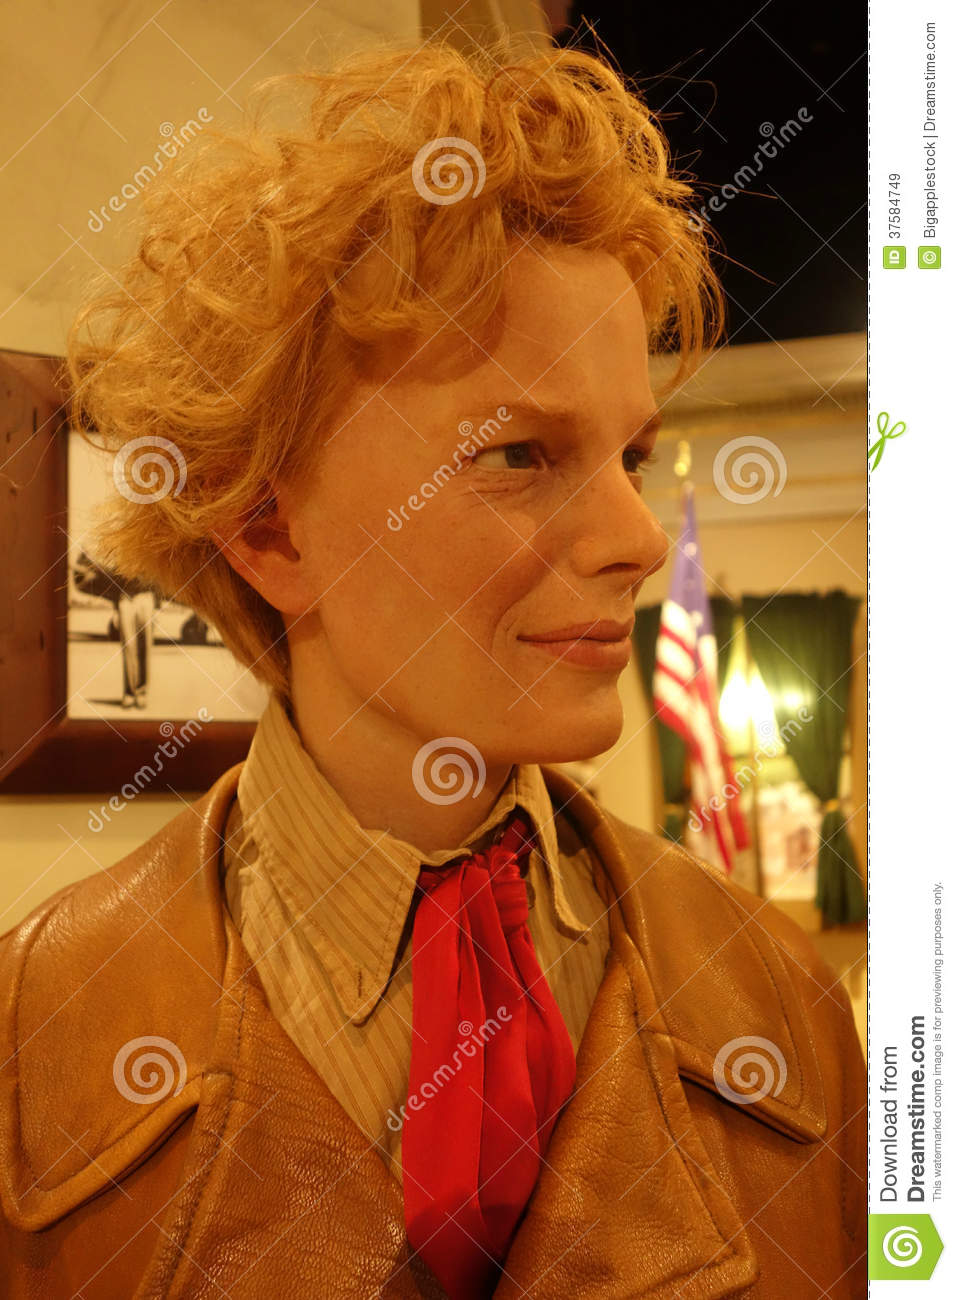 Amelia Earhart Wax Figure Editorial Stock Image   Image  37584749